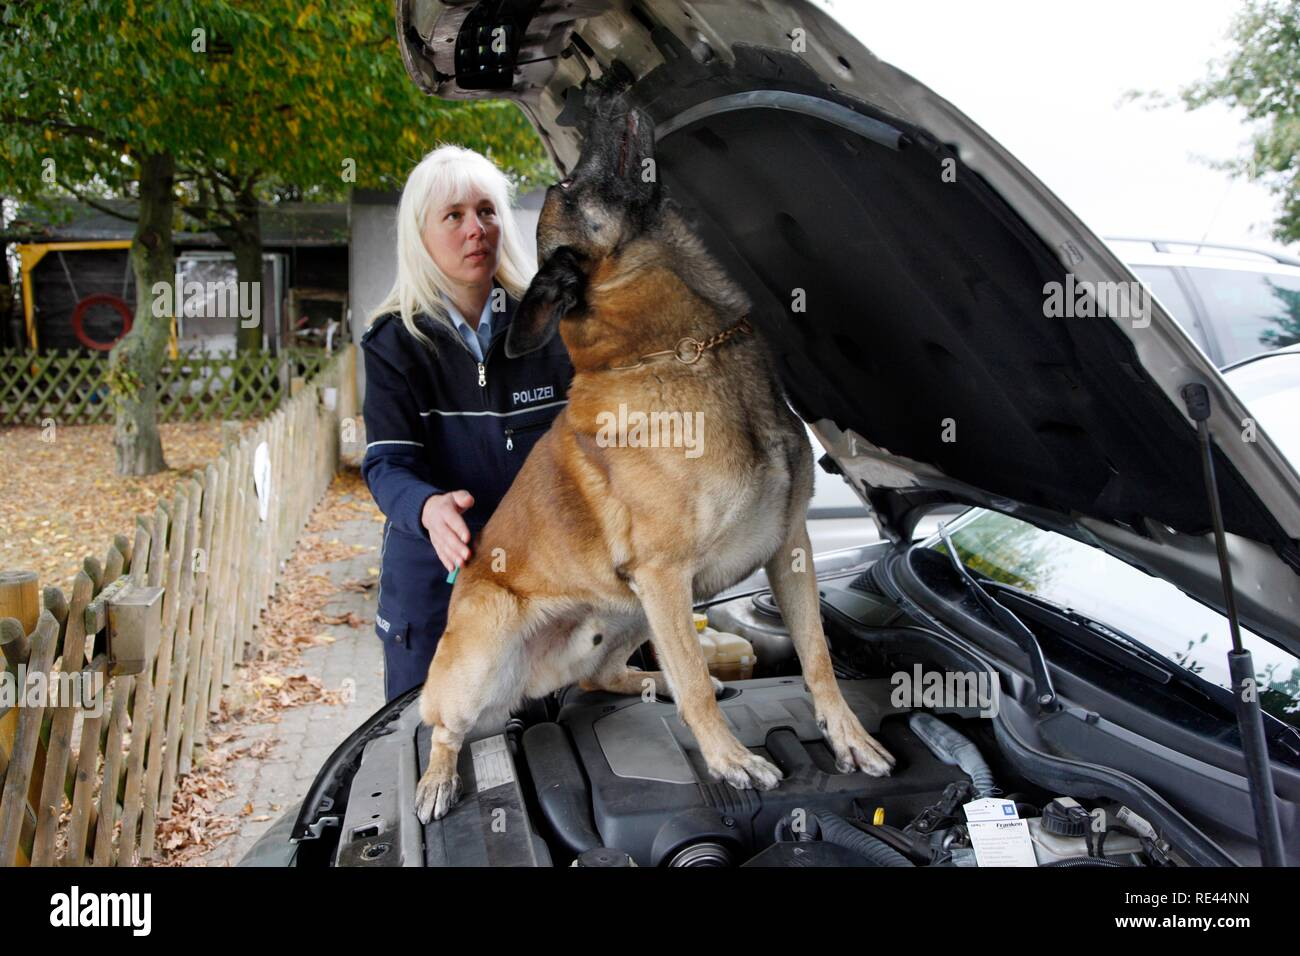 Police sniffer dog getting trained, searching for drugs in a vehicle - Stock Image